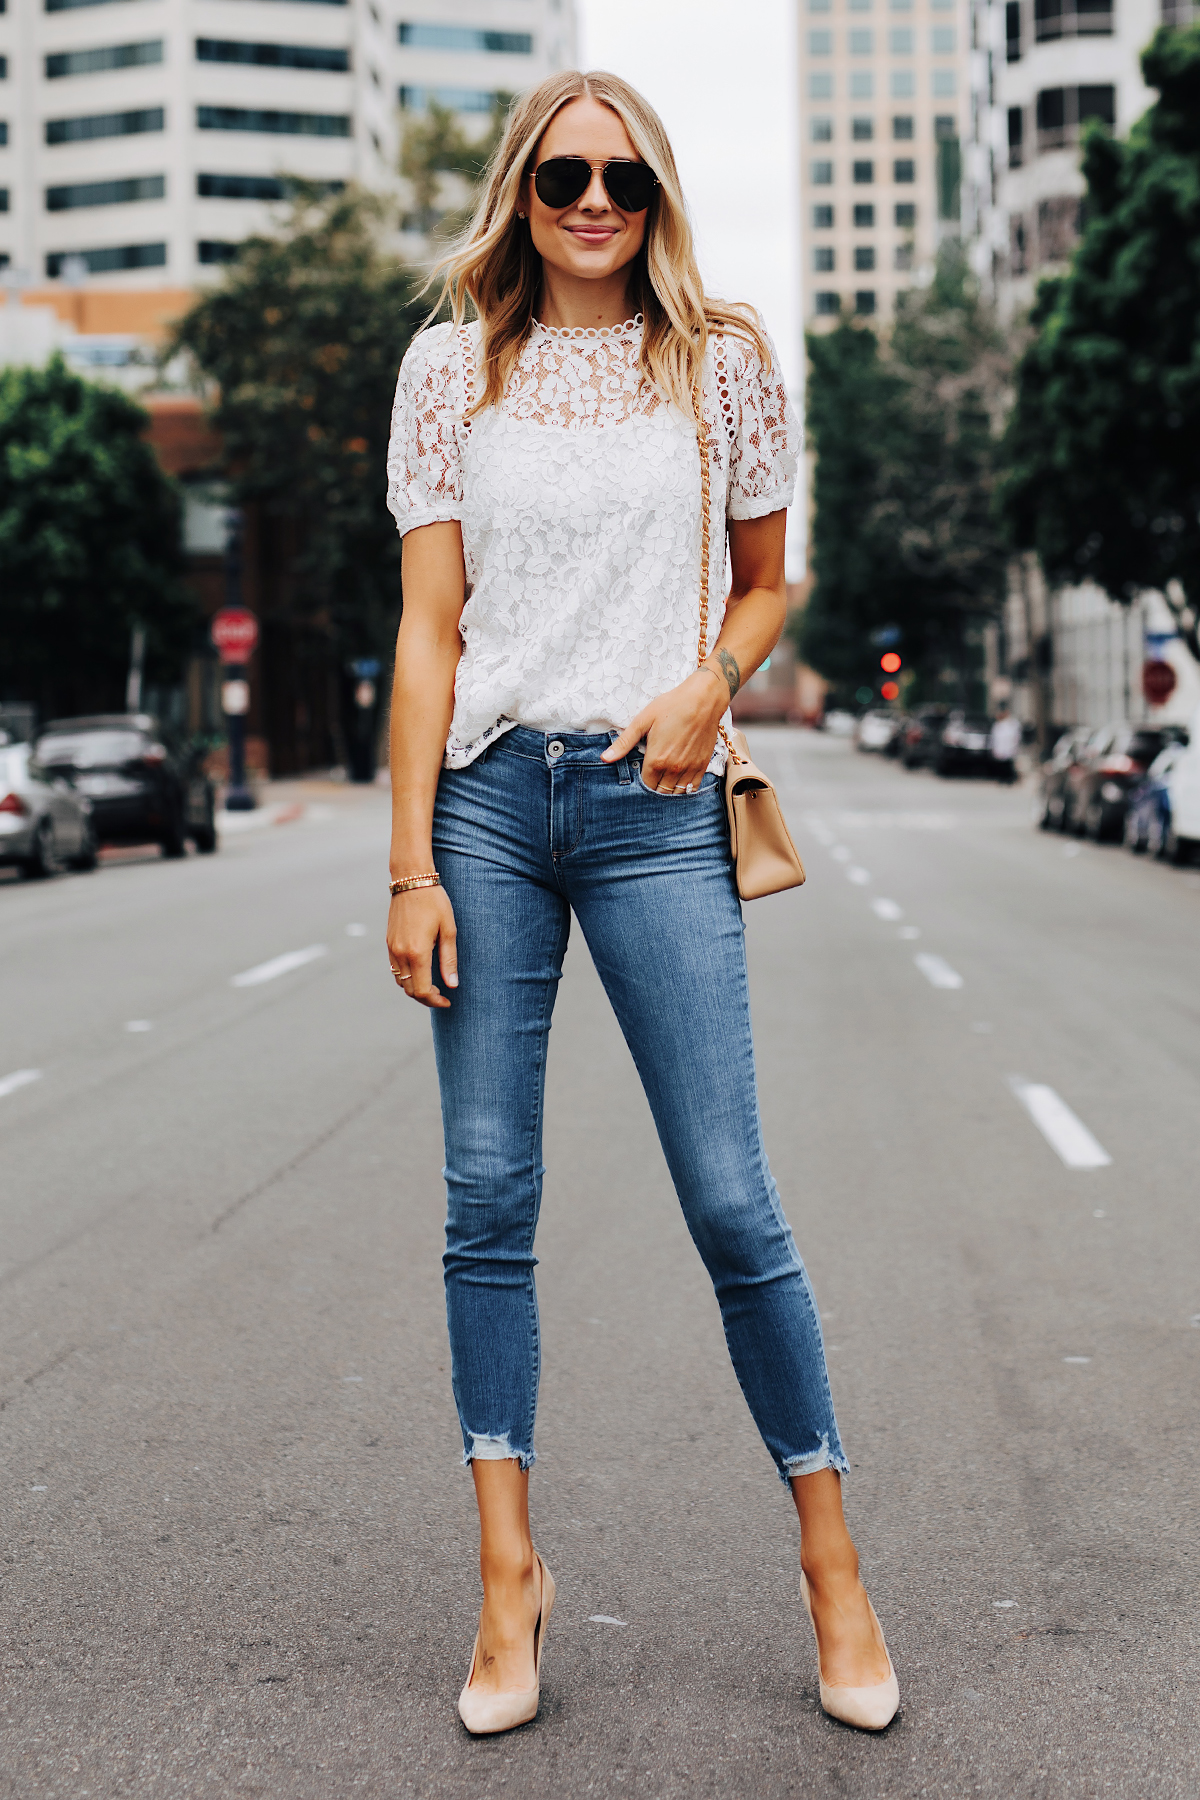 Fashion Jackson Wearing Bloomingdales Short Sleeve White Lace Top Paige Verdugo Skinny Jeans in North Star Distressed Jimmy Choo Nude BB Pumps Summer Date Night Outfit